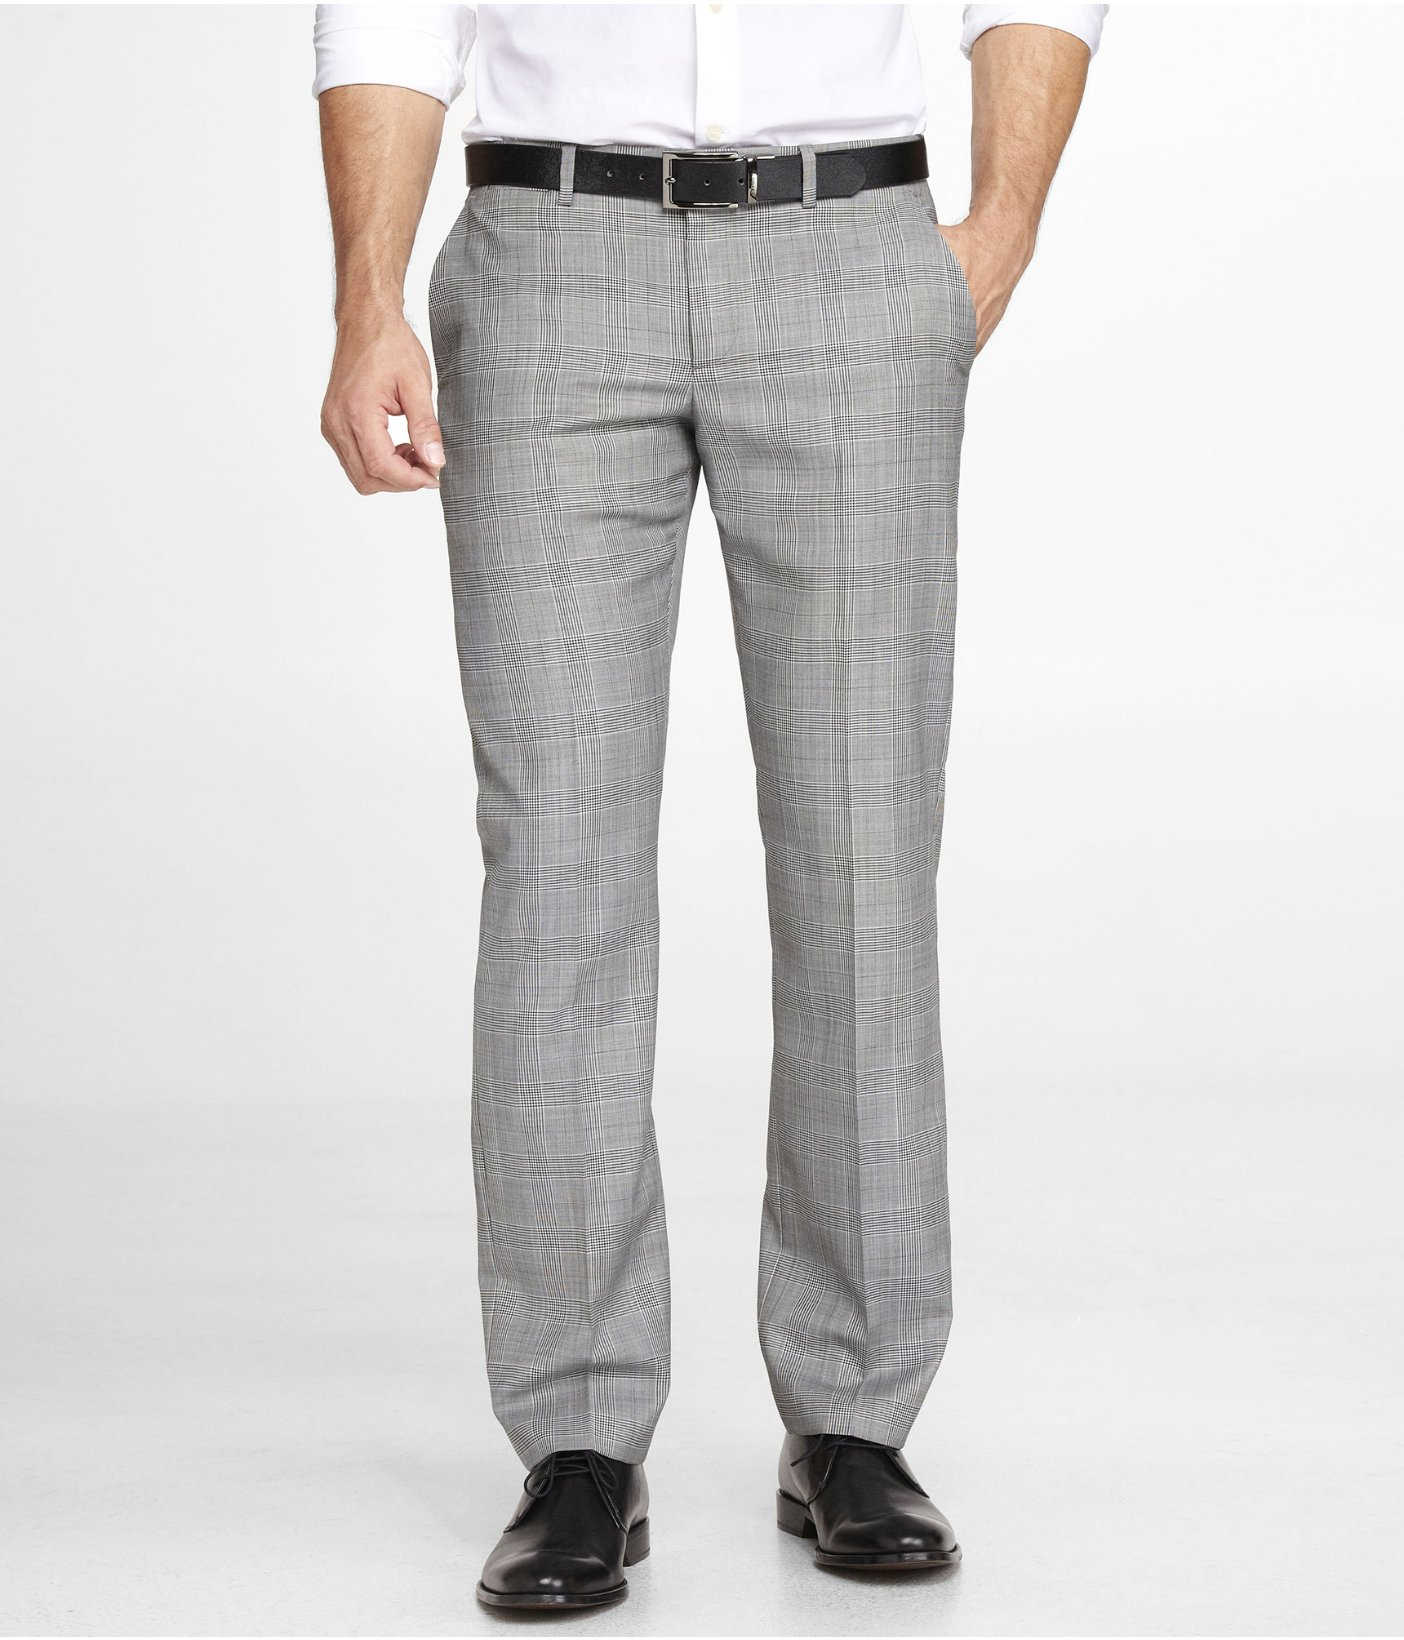 Express Plaid Photographer Suit Pant in Gray for Men - Lyst